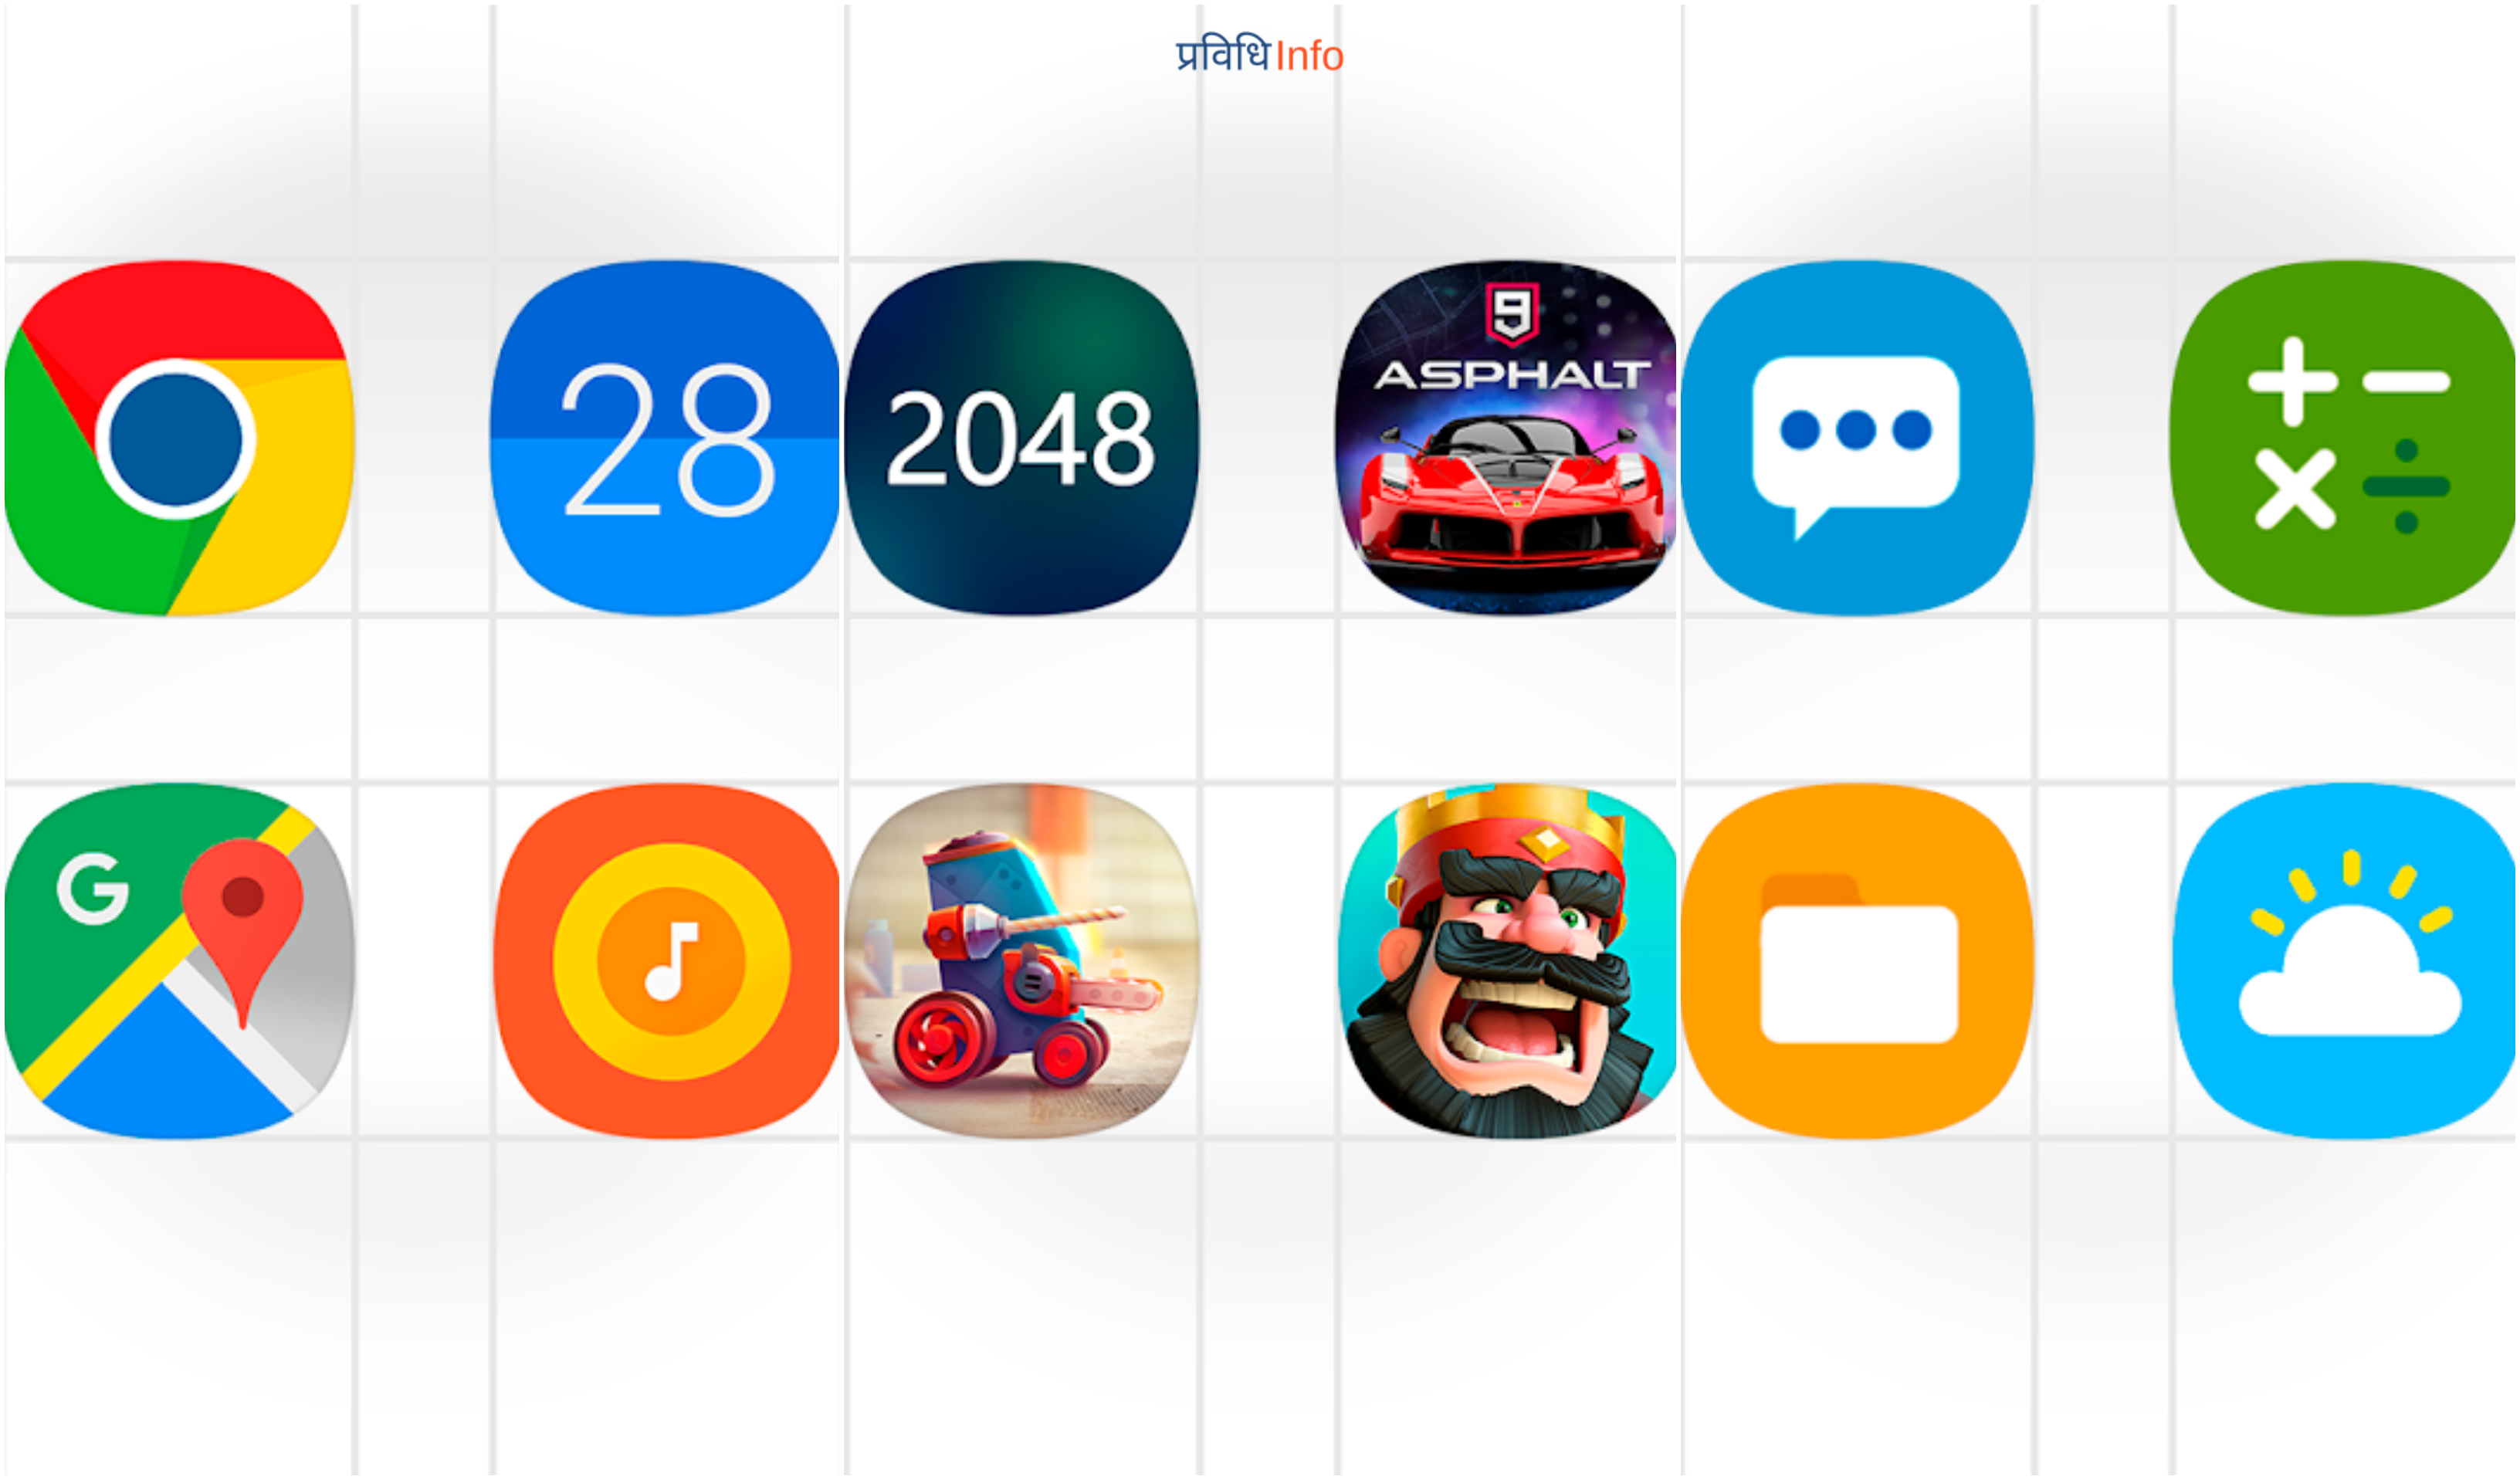 OneUI Icon pack TOP 10 UNIQUE & BEST ANDROID APPS - APRIL 2019 LIST